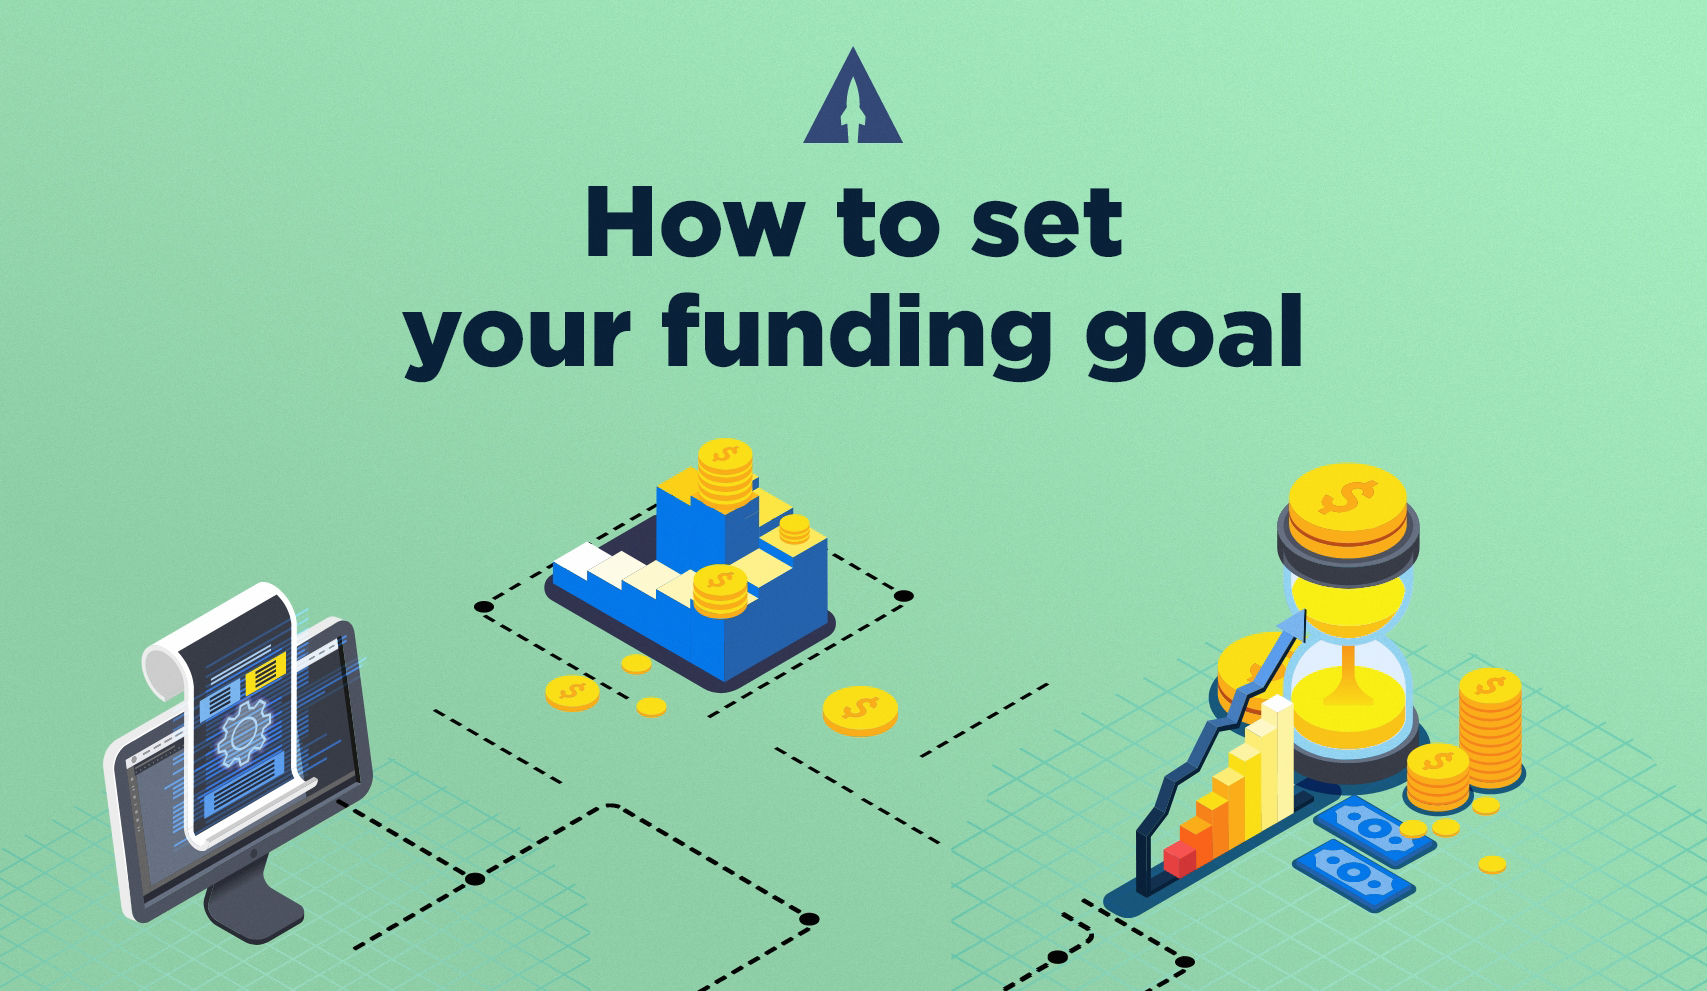 How to set your funding goal